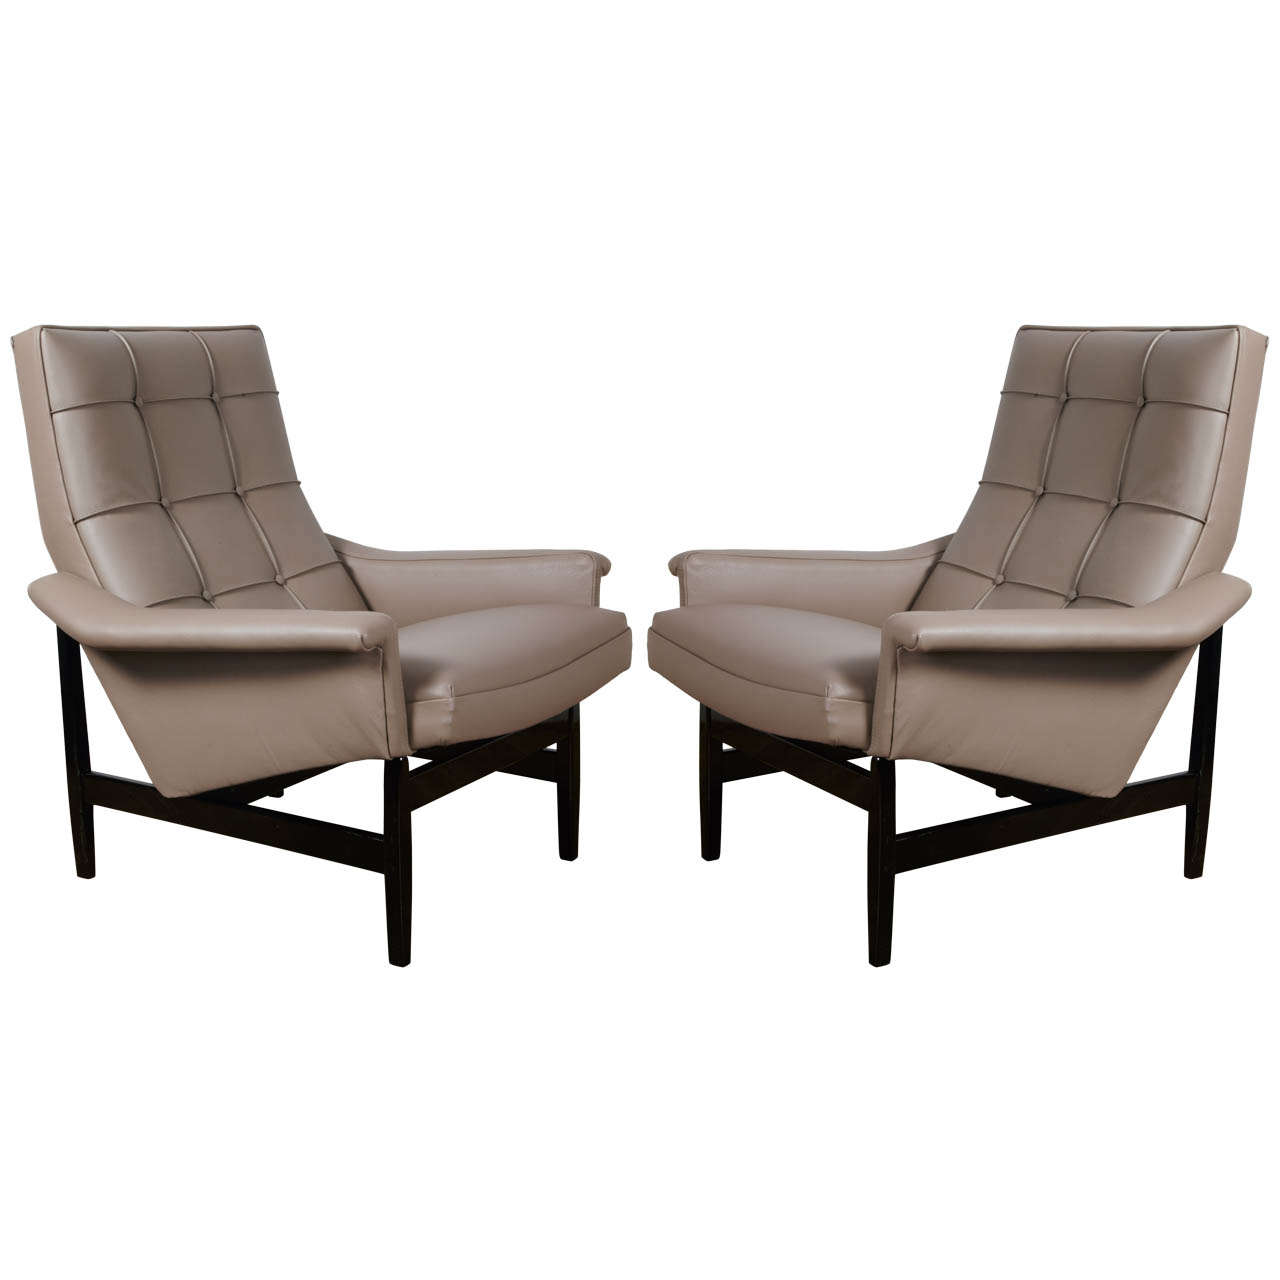 Grey Leather Club Chair A Pair Of Grey Leather Lounge Chairs On Black Lacquered